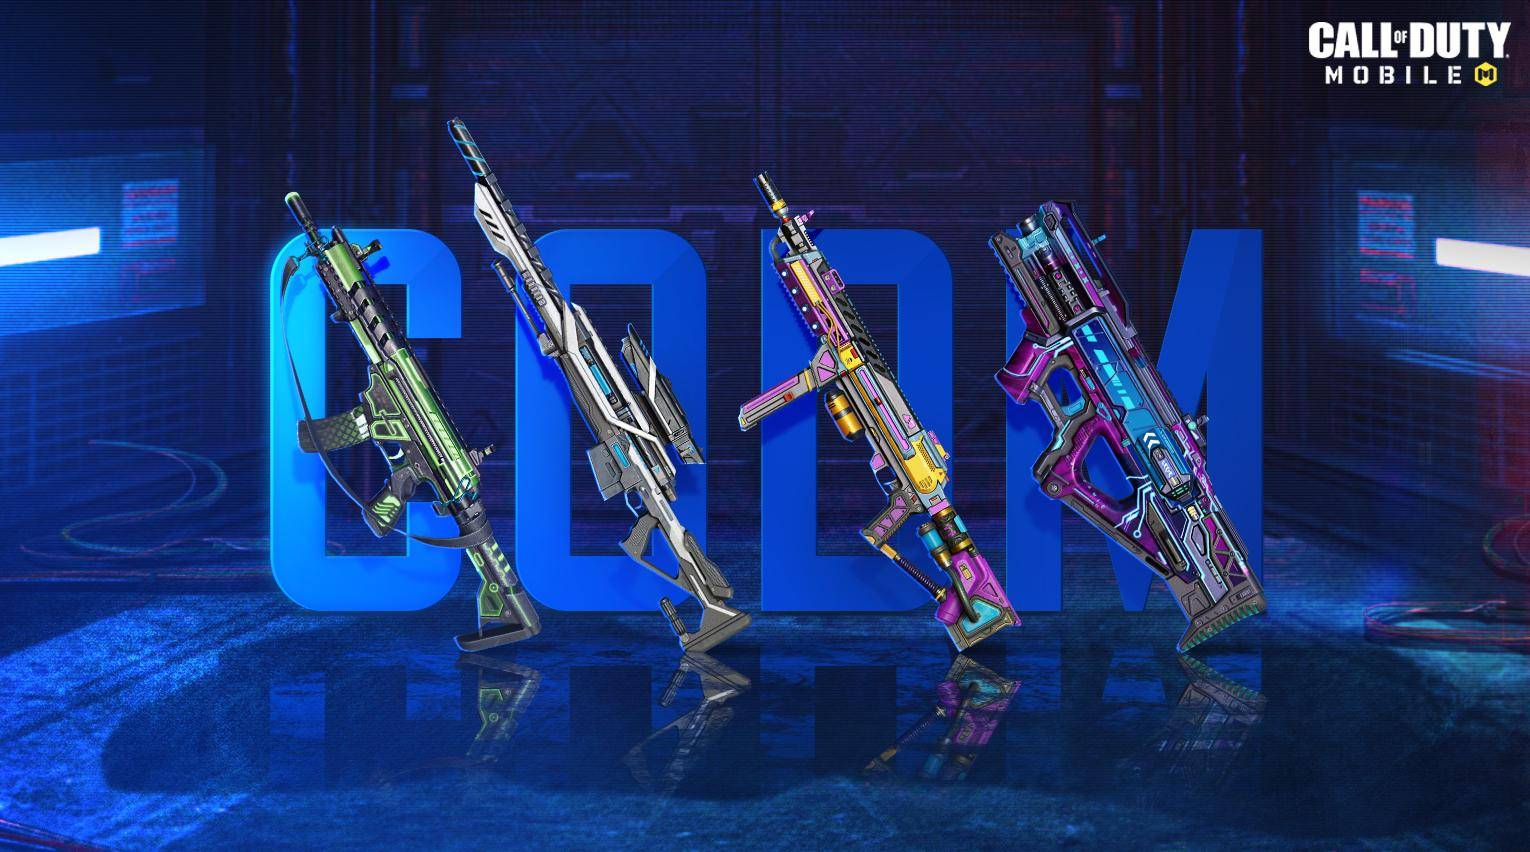 COD Mobile New Order weapons